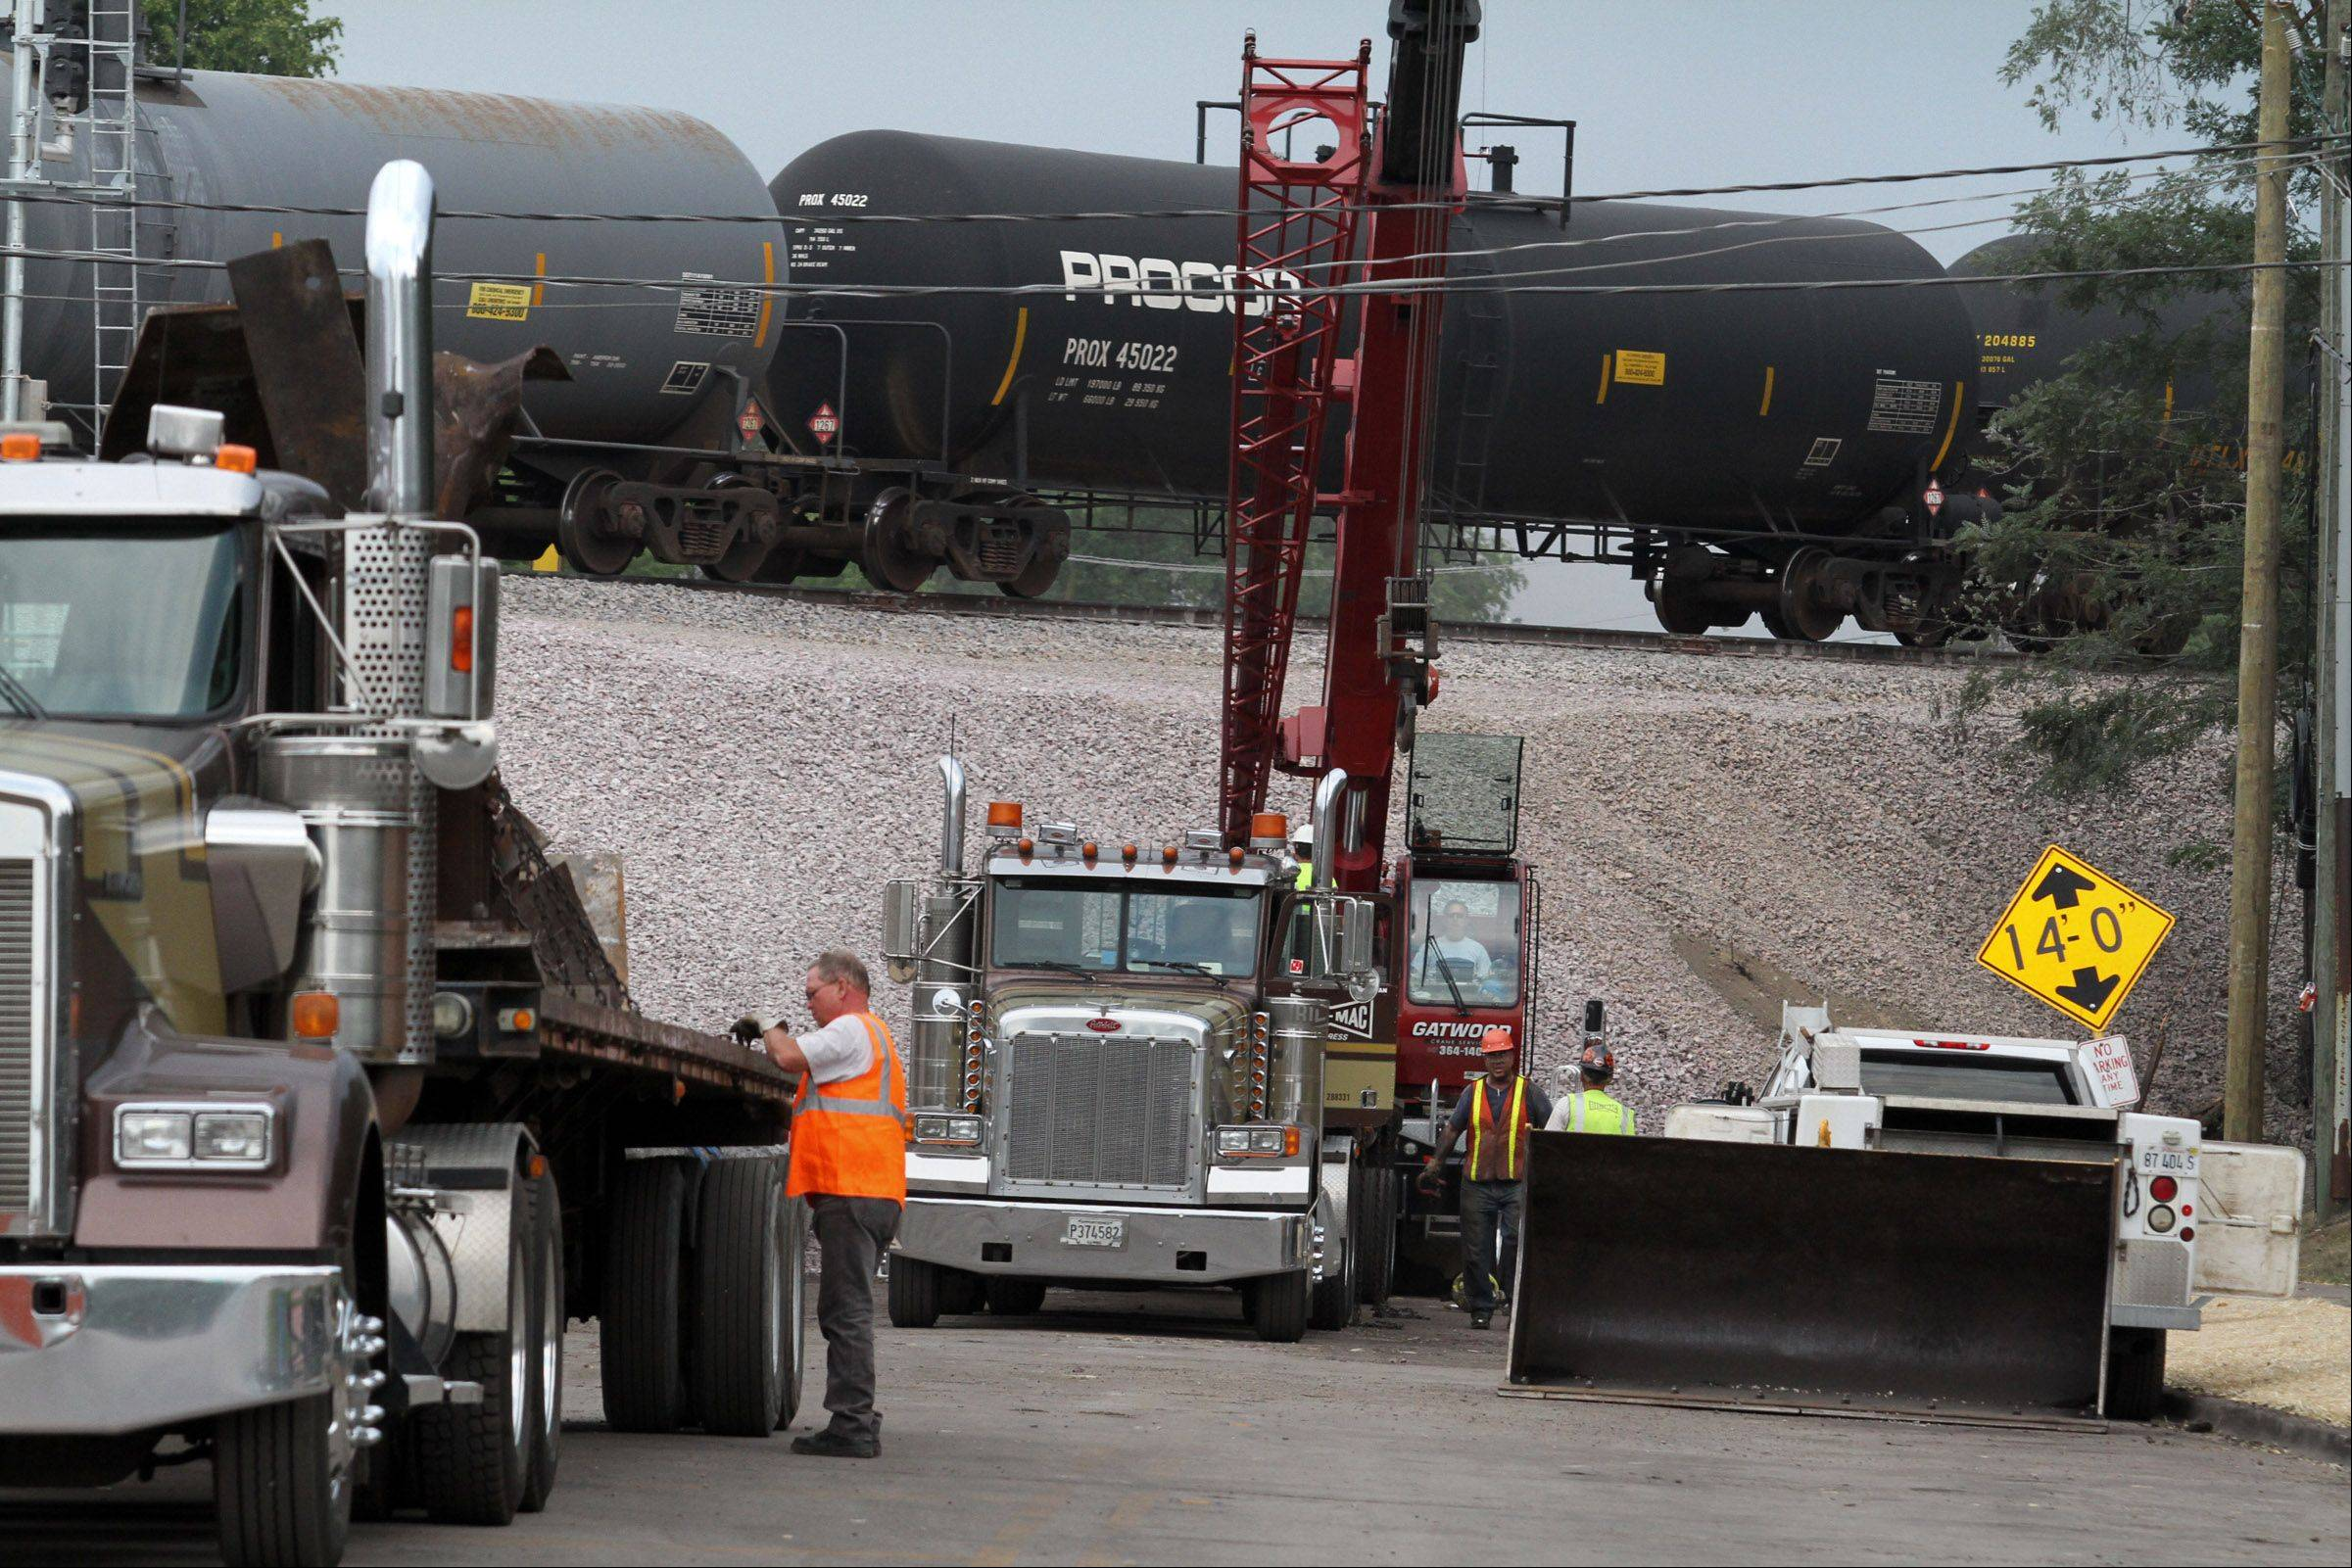 Crews continue cleanup of the train derailment site in Glenview Friday.